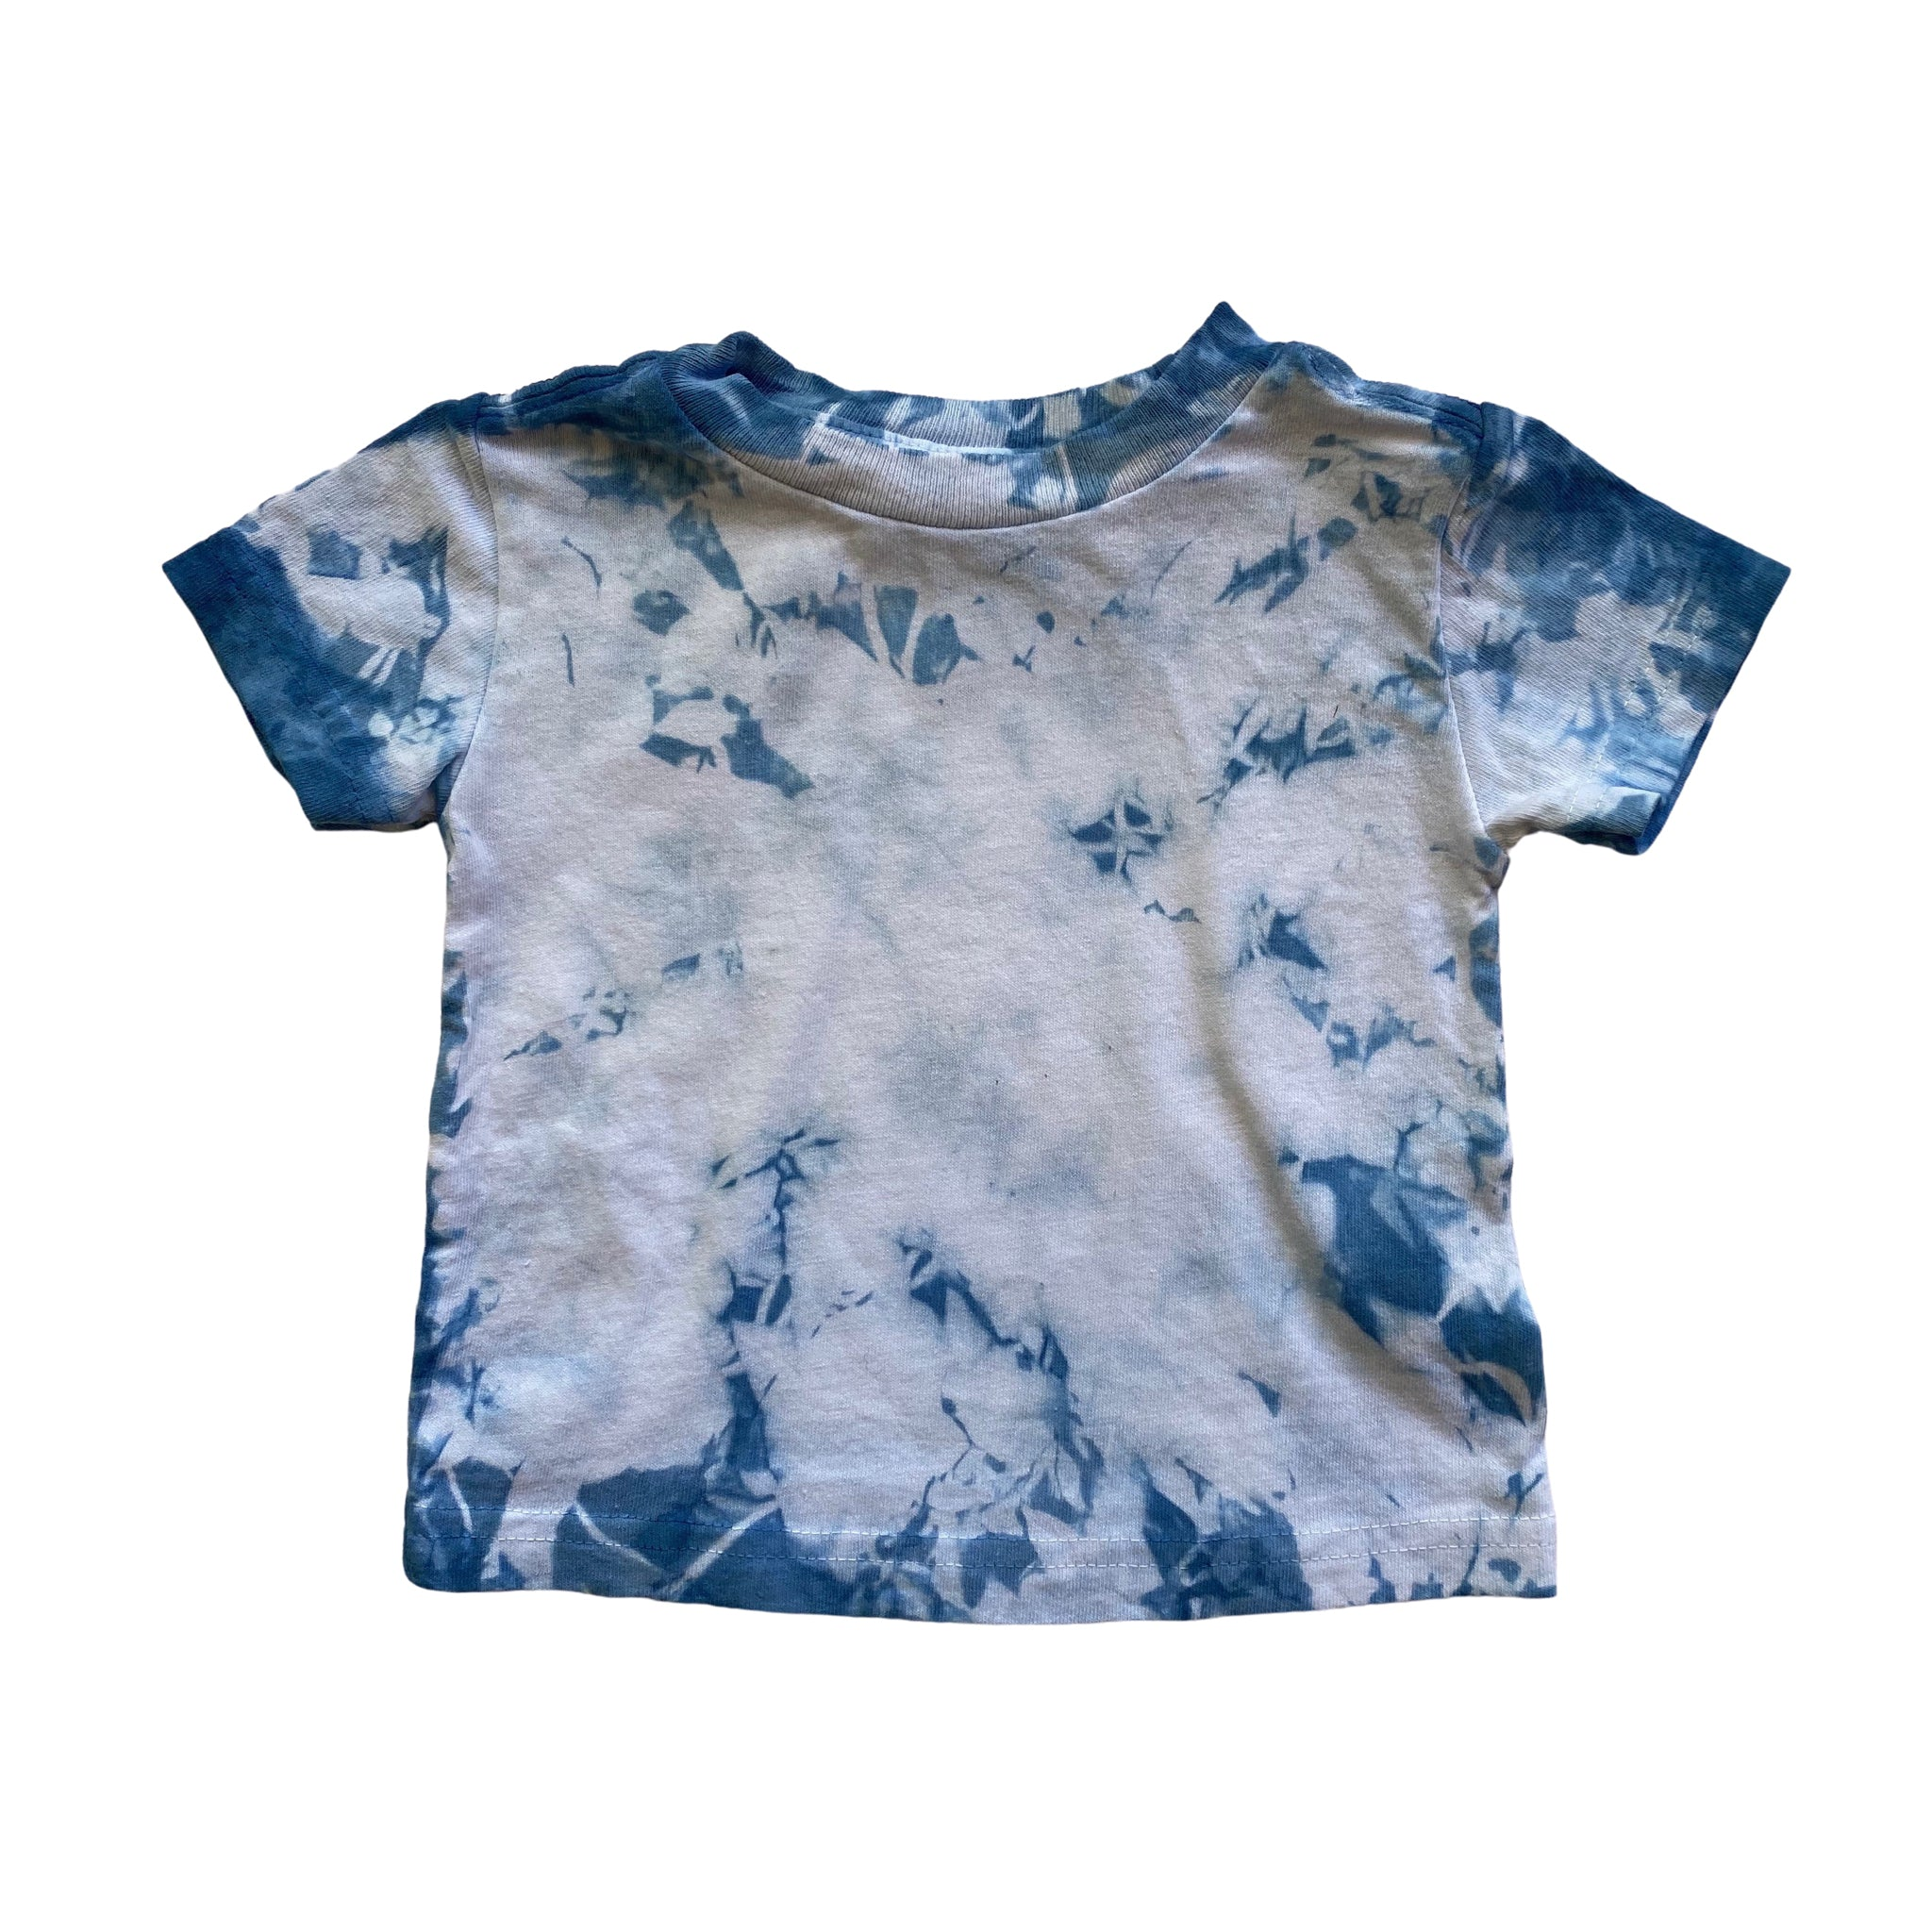 Baby or Toddler T-shirt for Dyeing